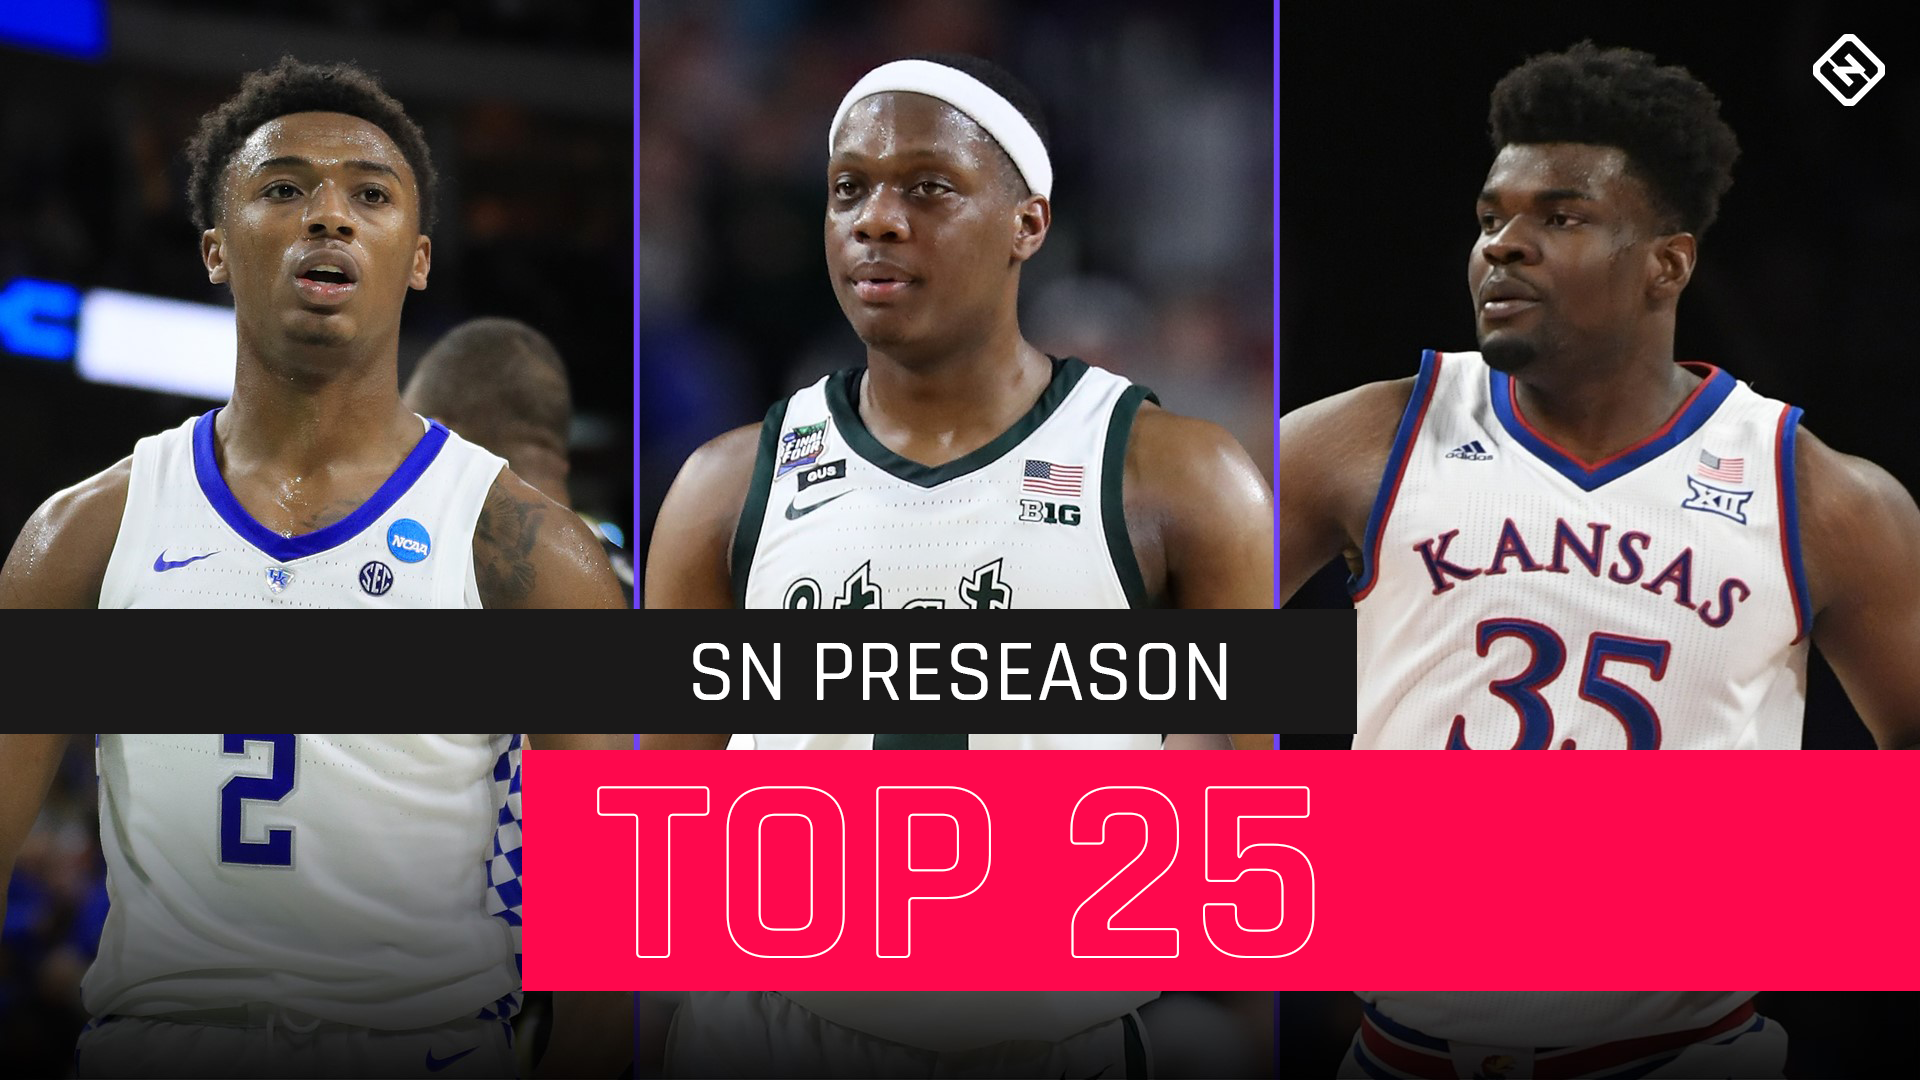 College Basketball Rankings Sn S Updated Preseason Top 25